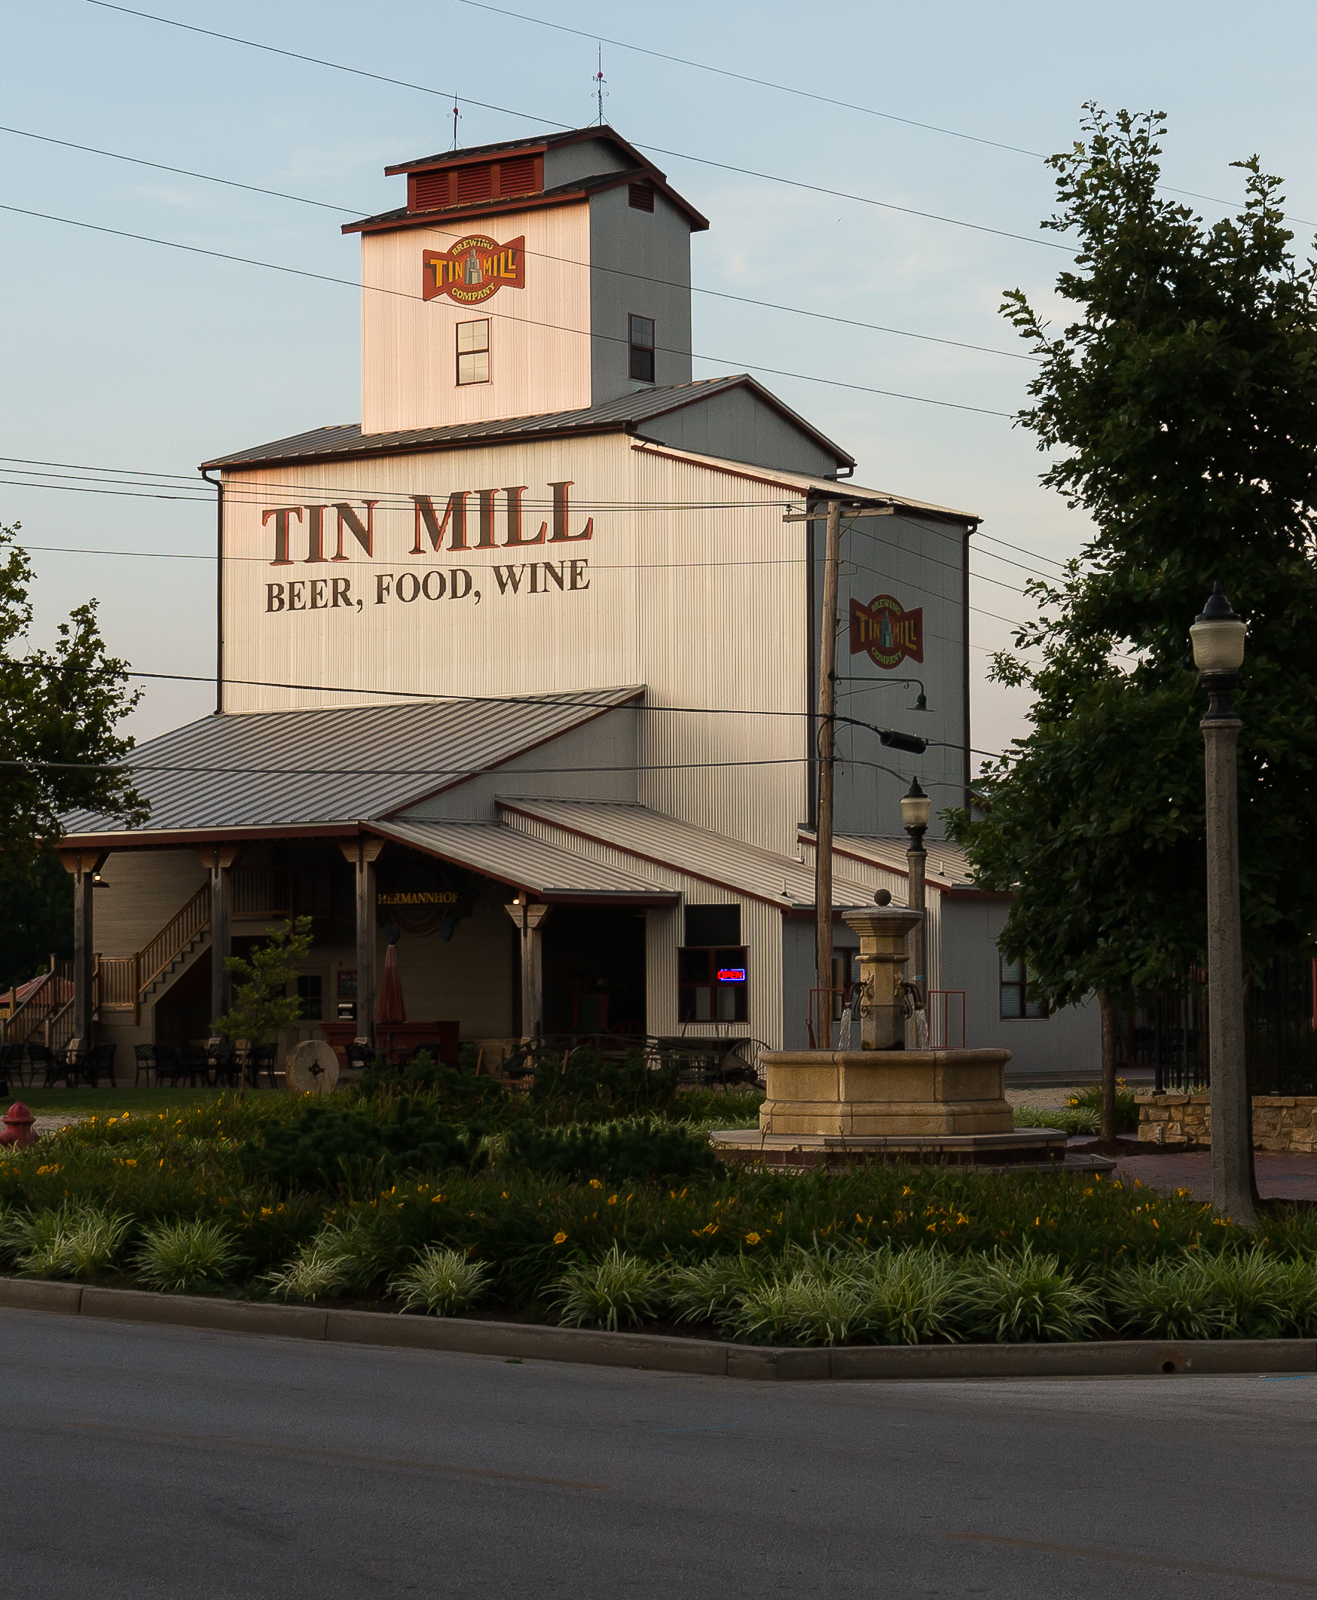 This is an excellent brewery in Hermann. Tin Mill Brewery has great seasonal beers on tap. I had a sour imperial red ale that was heavy on the oak which was a great capper to the day.